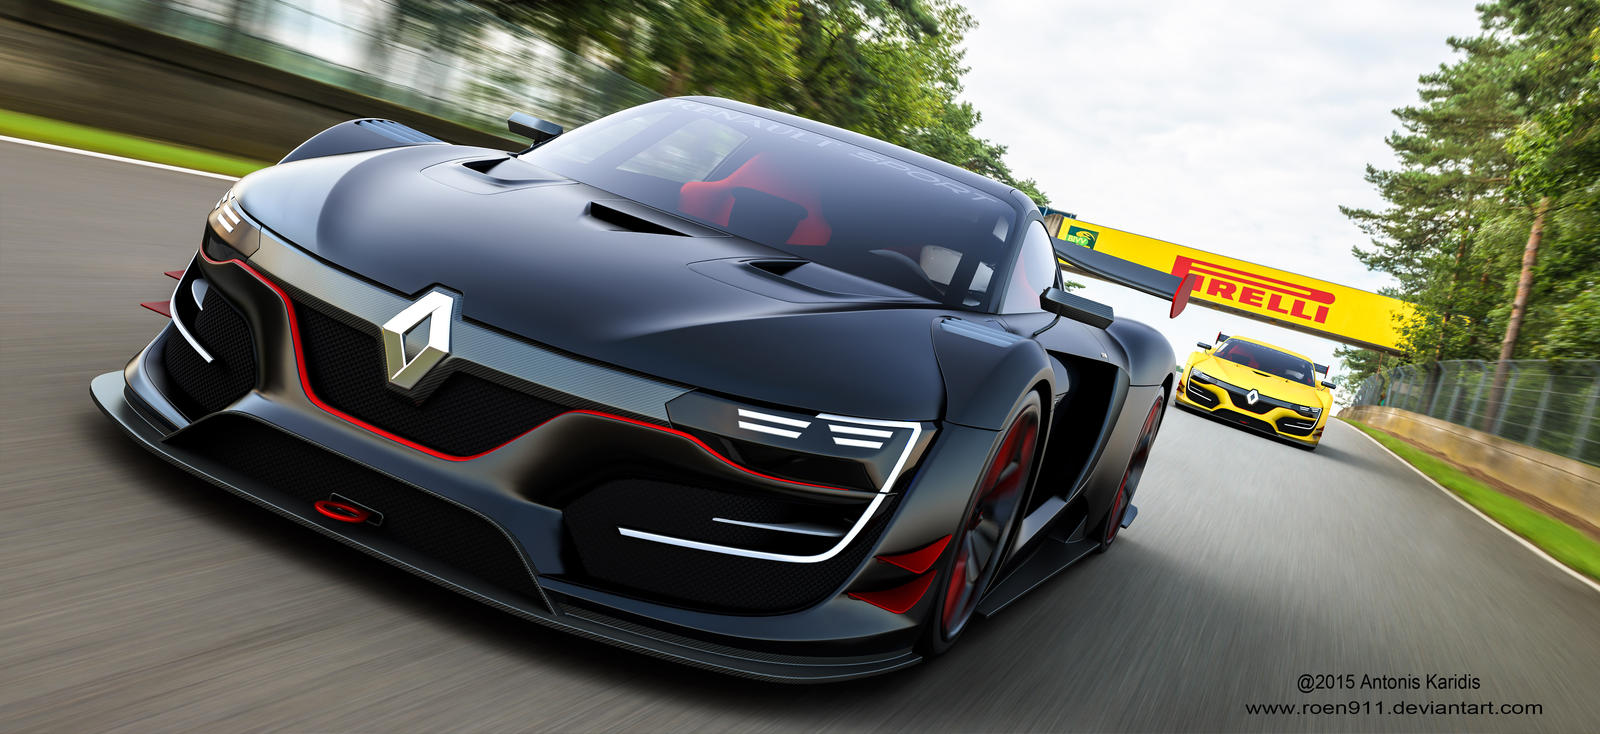 The Race Renault Rs01 By Roen911 On Deviantart